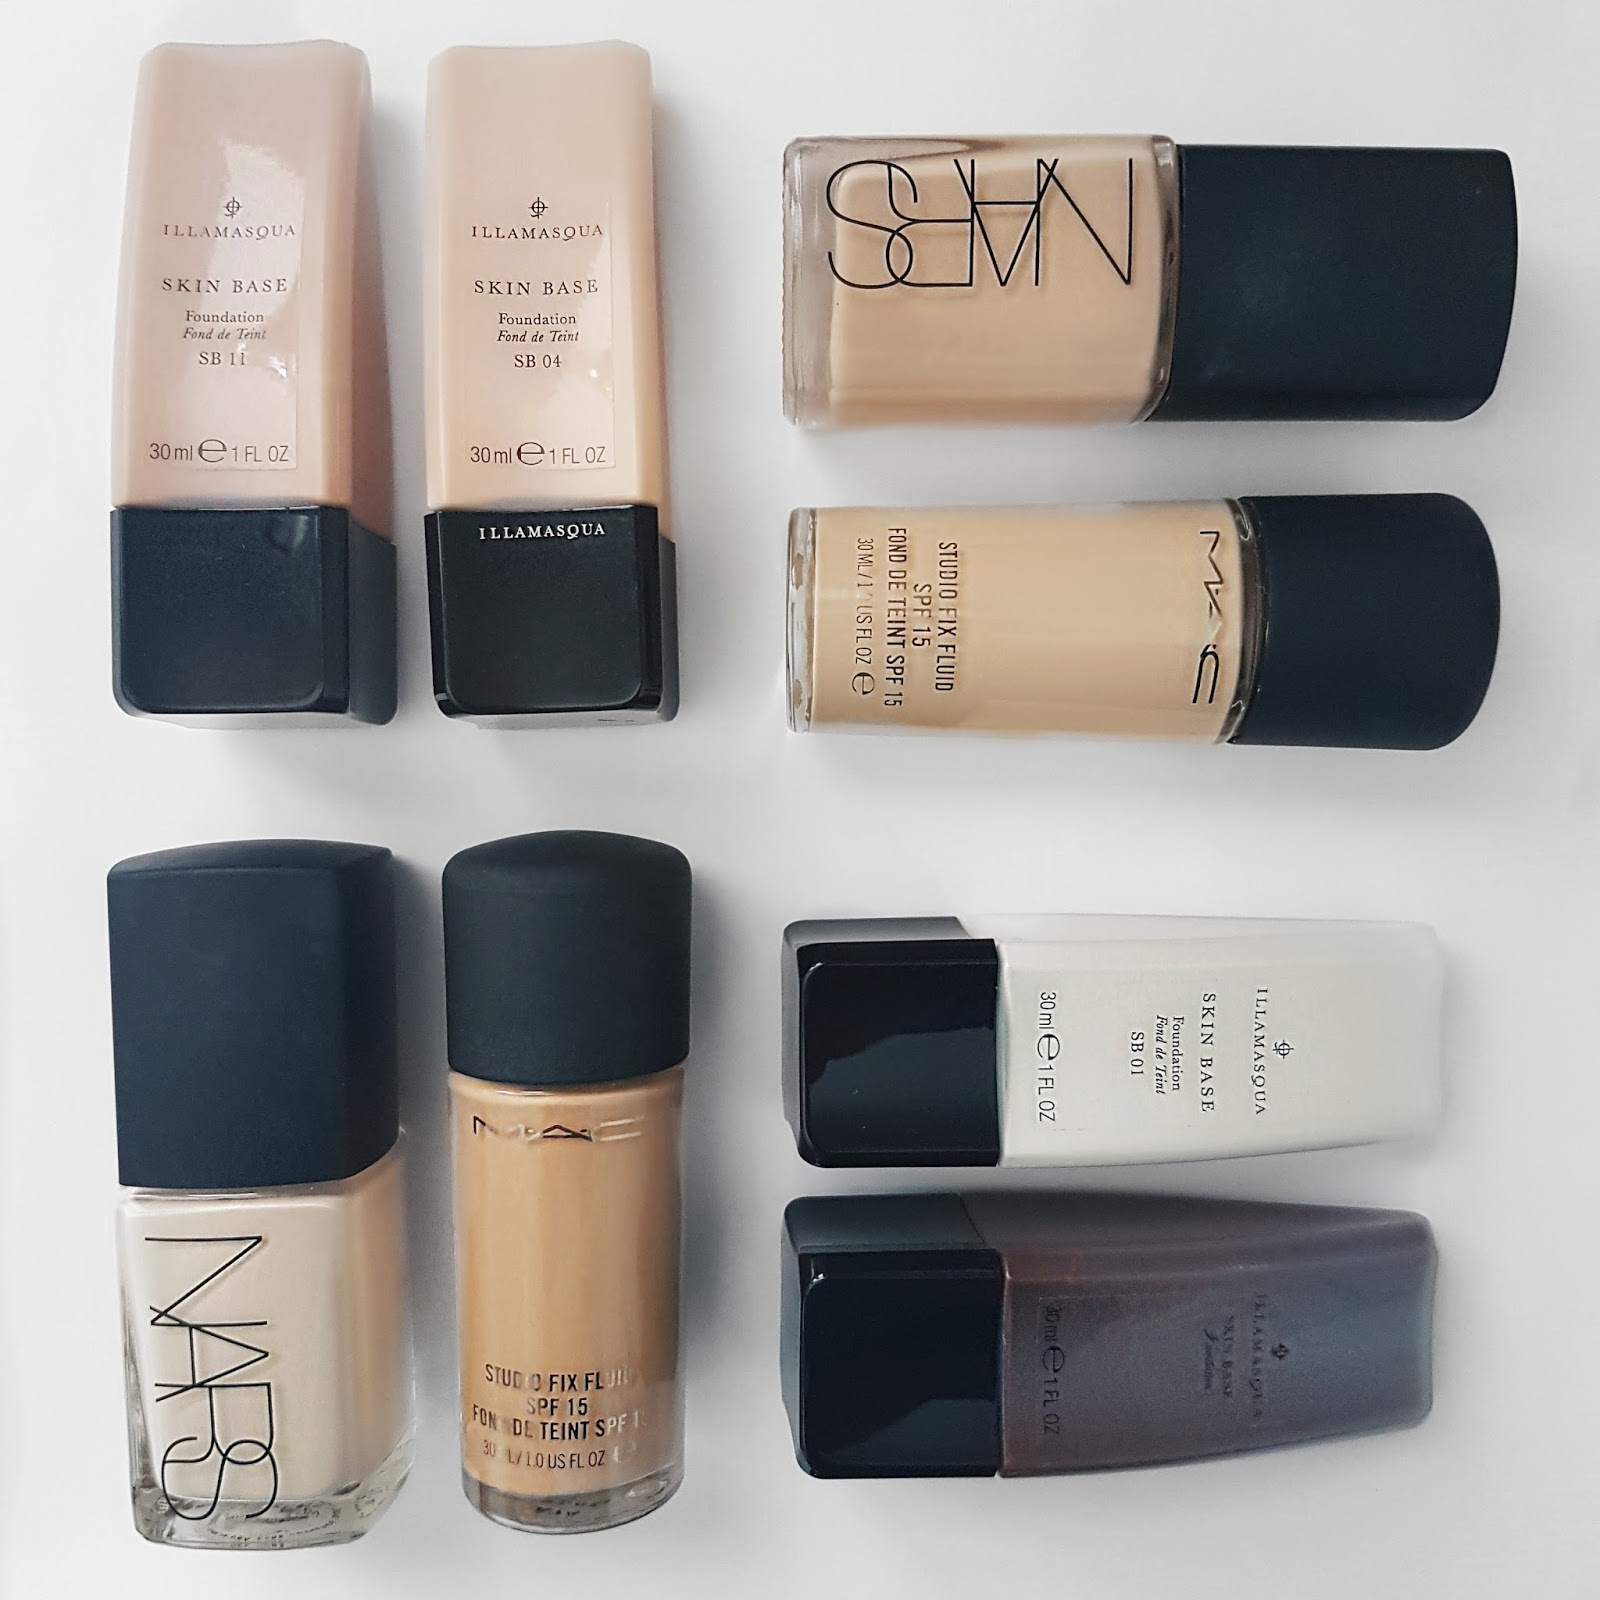 Nars and Illamasqua Foundations